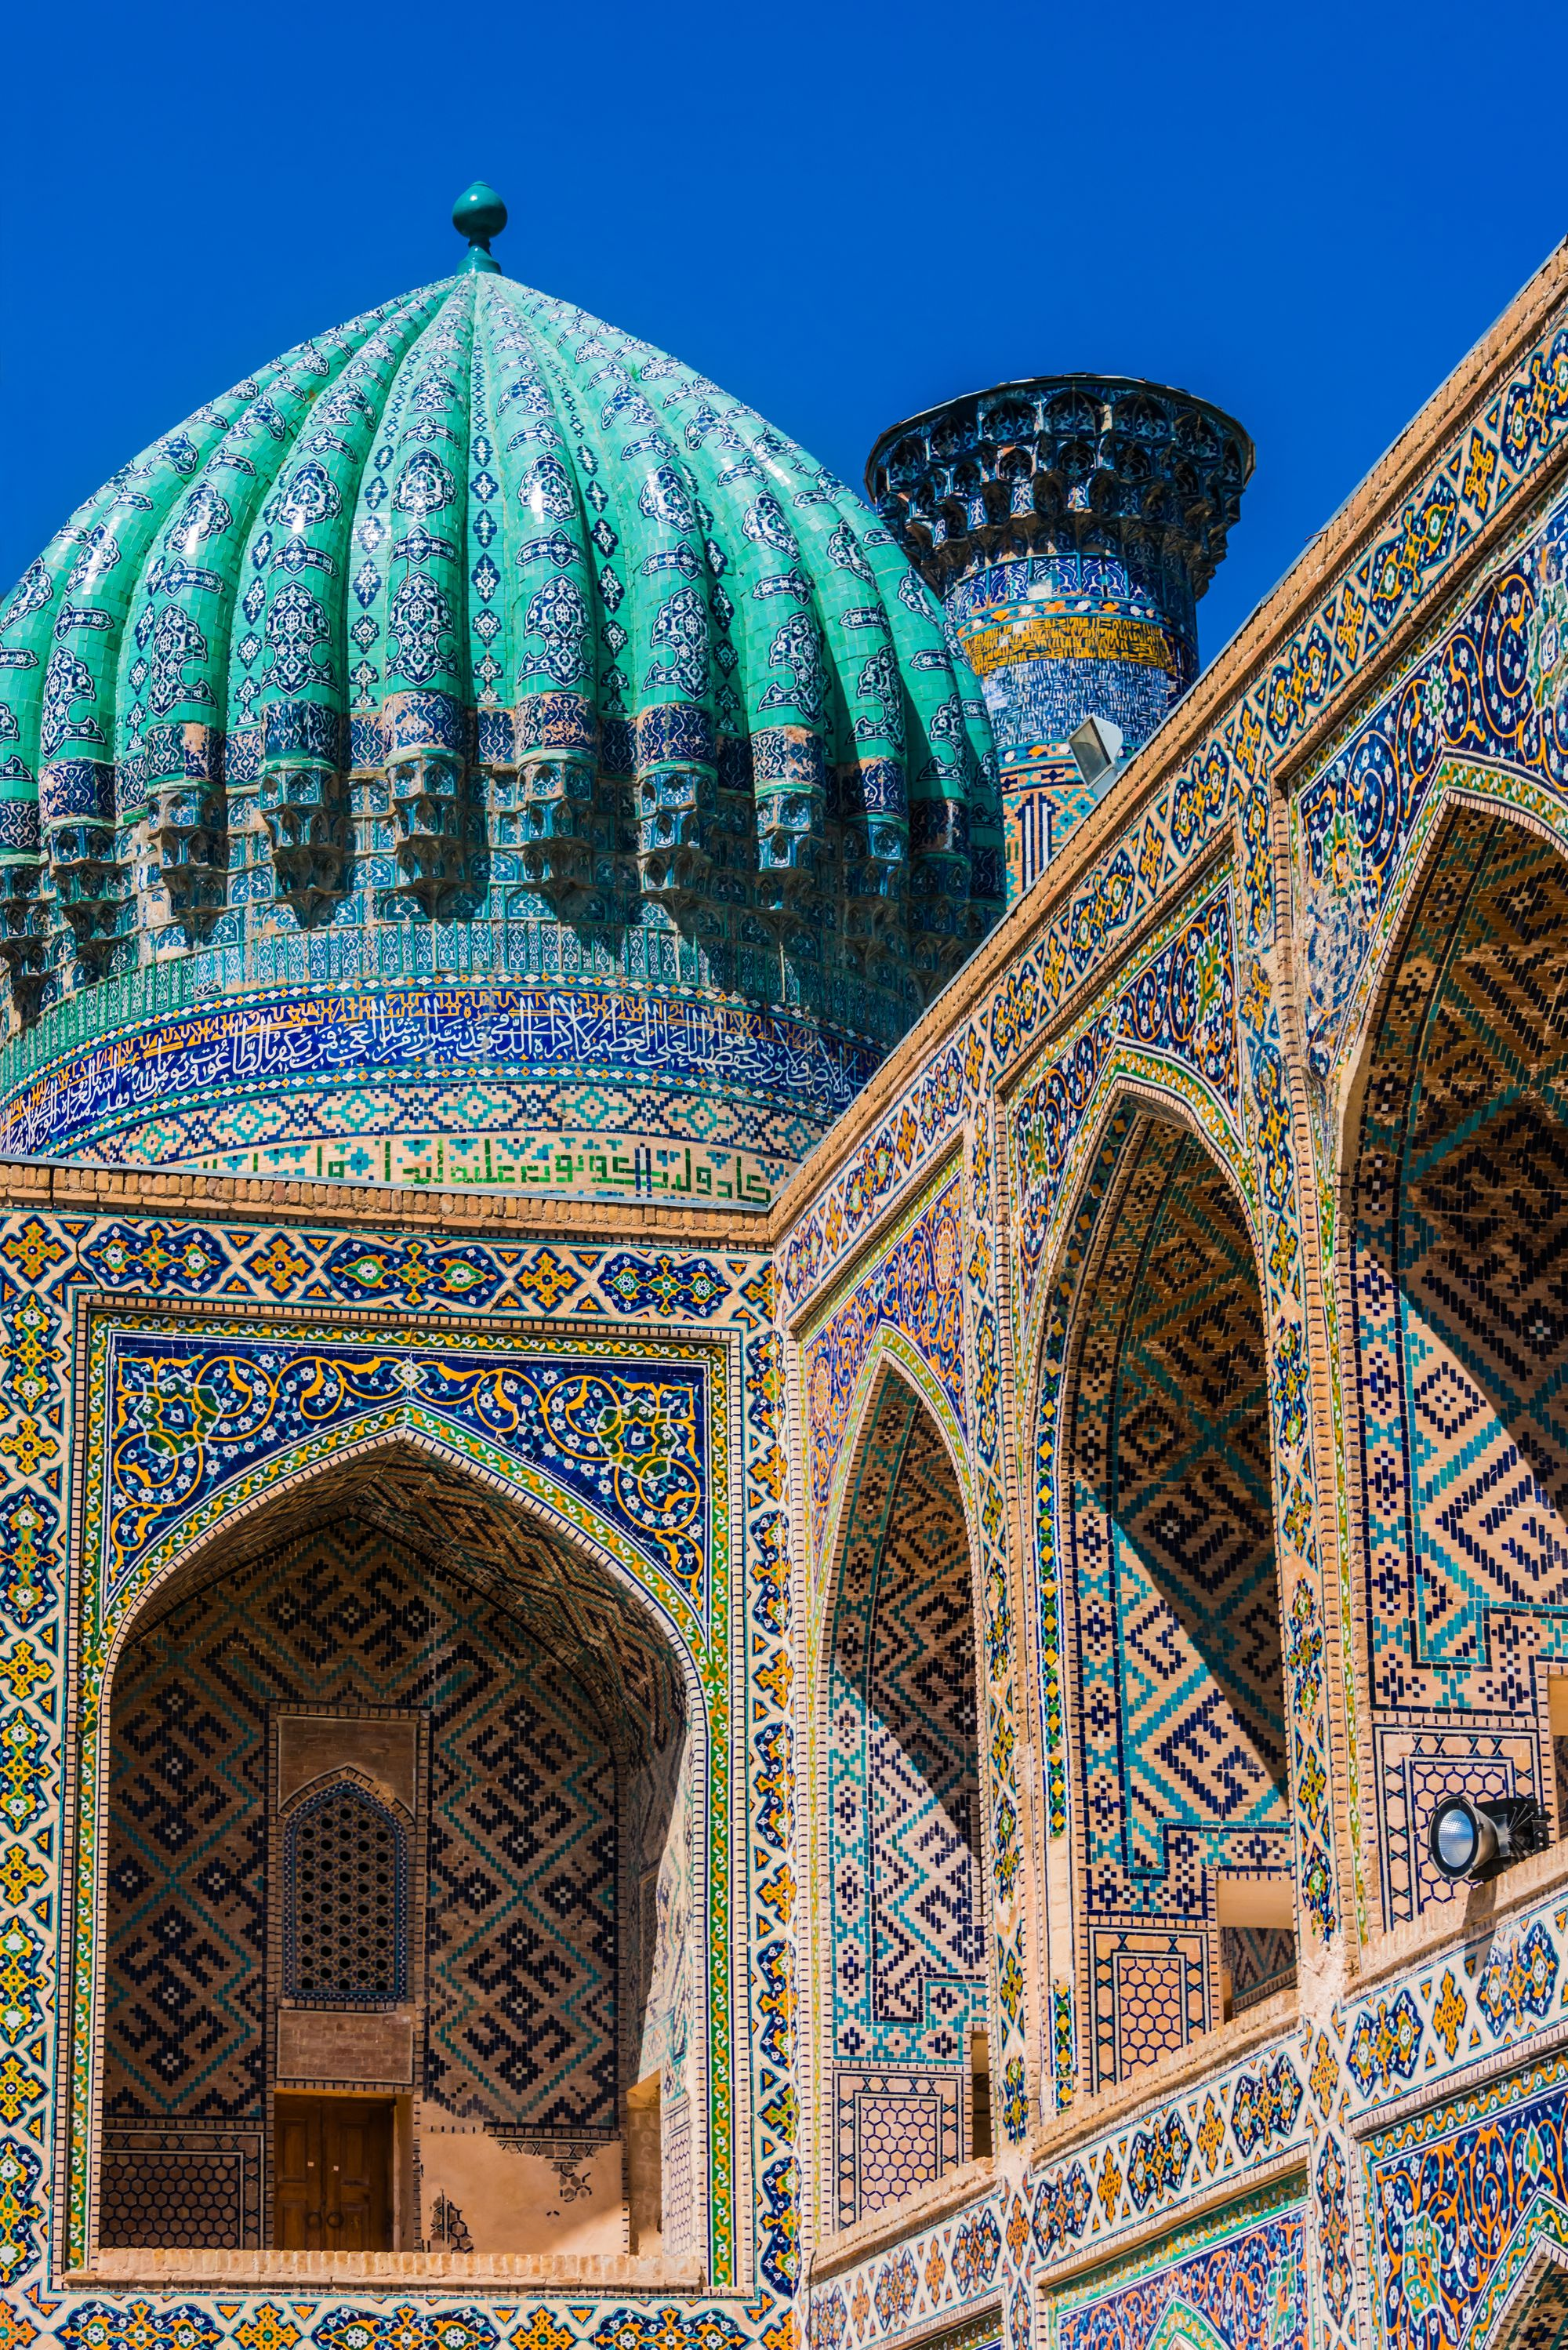 Architecture of Registan, an old public square in the heart of the ancient city of Samarkand, Uzbekistan.